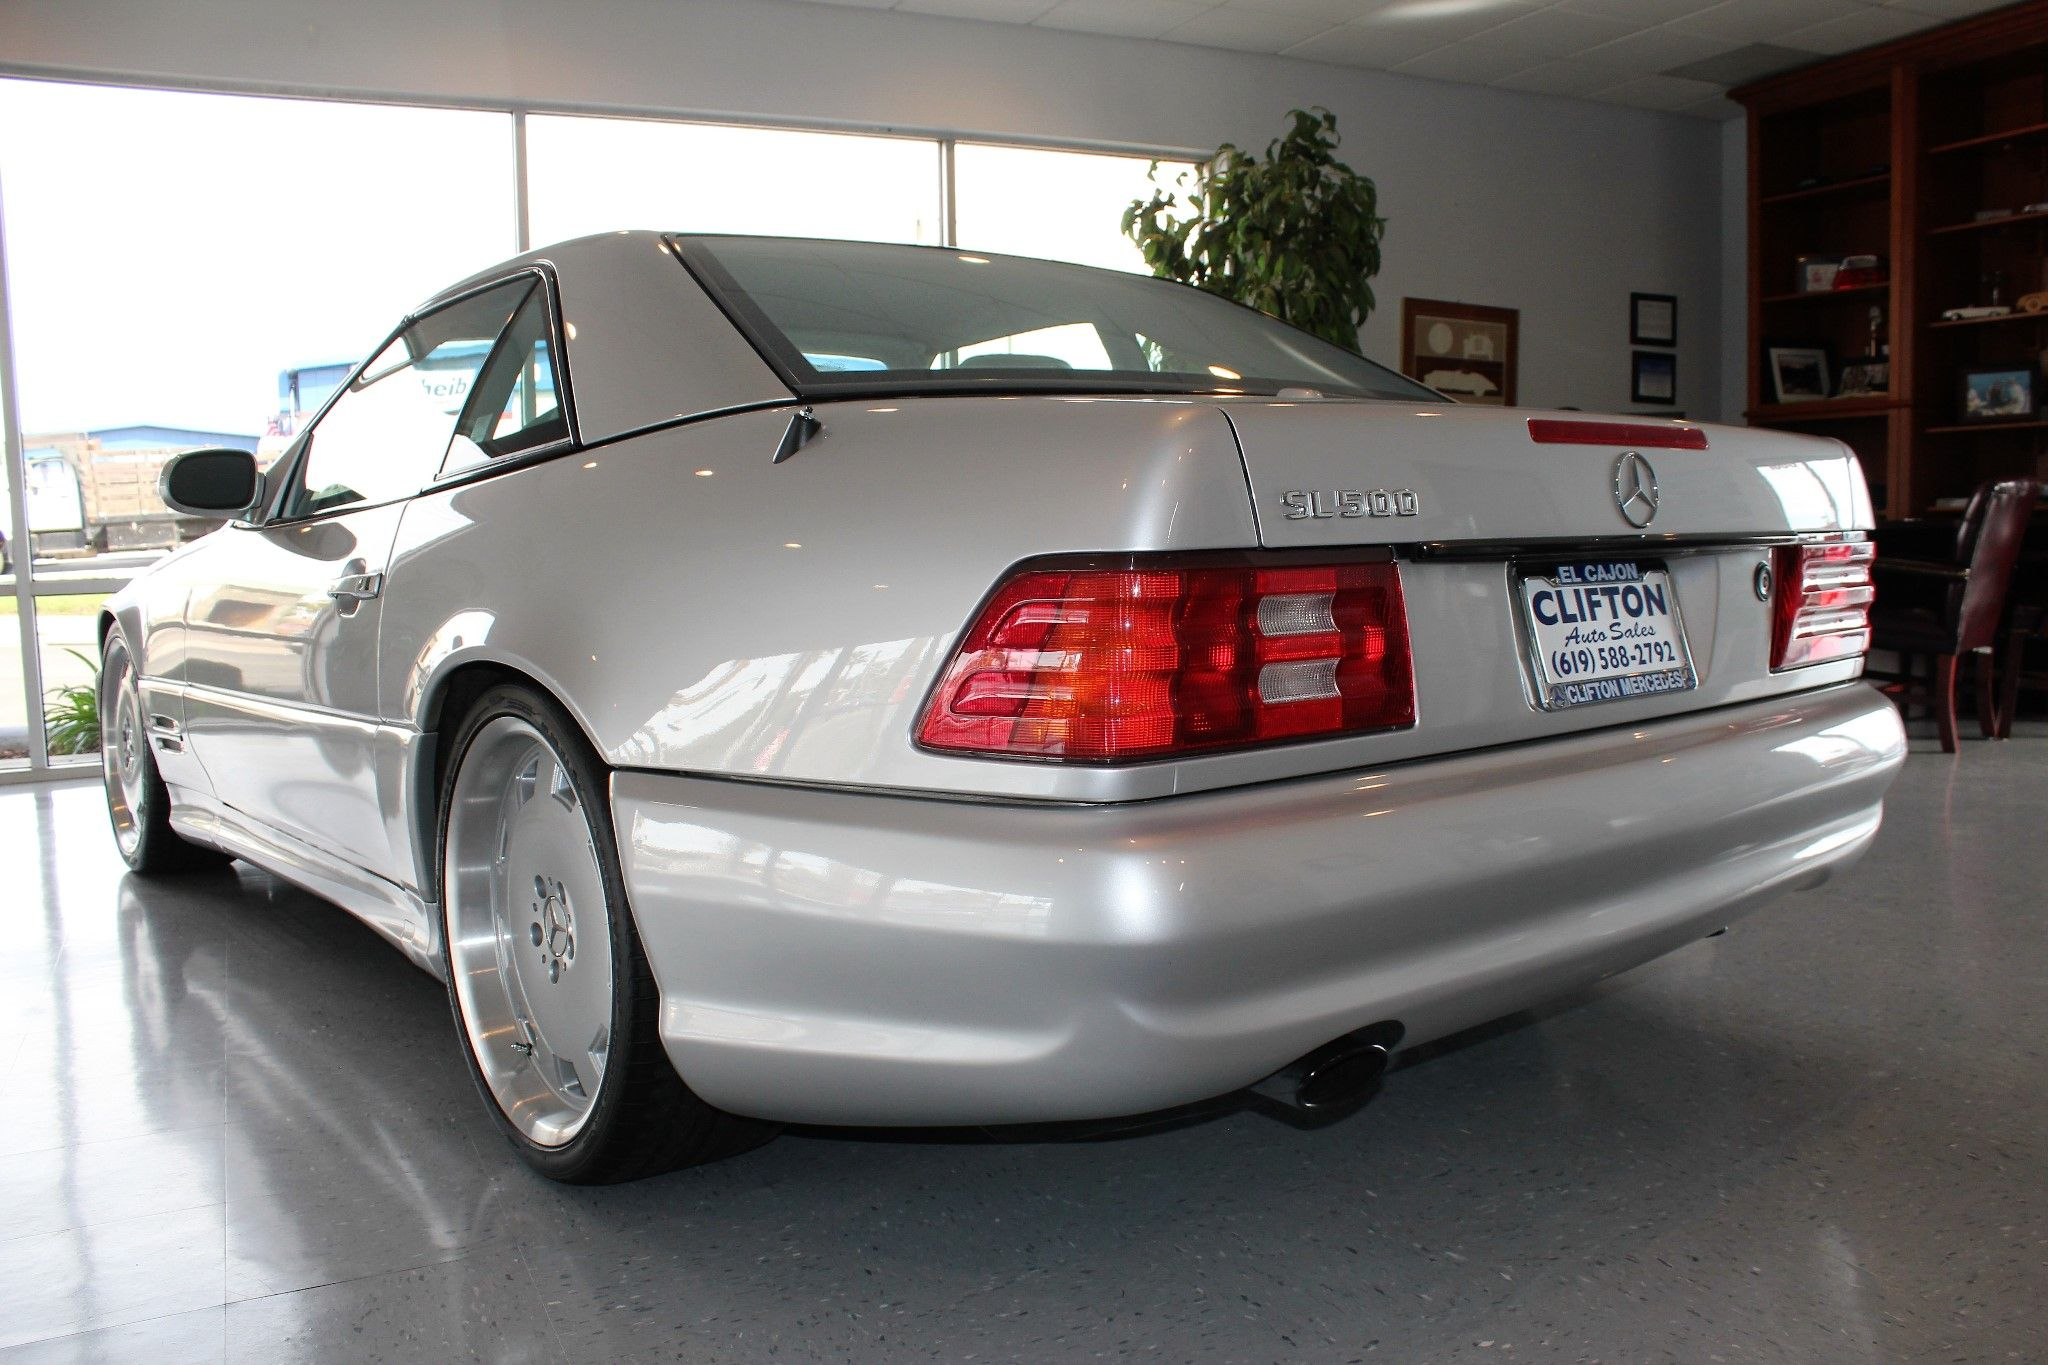 supercharged 2000 mercedes benz sl500 mercedes benz cars mercedes benz mercedes benz world supercharged 2000 mercedes benz sl500